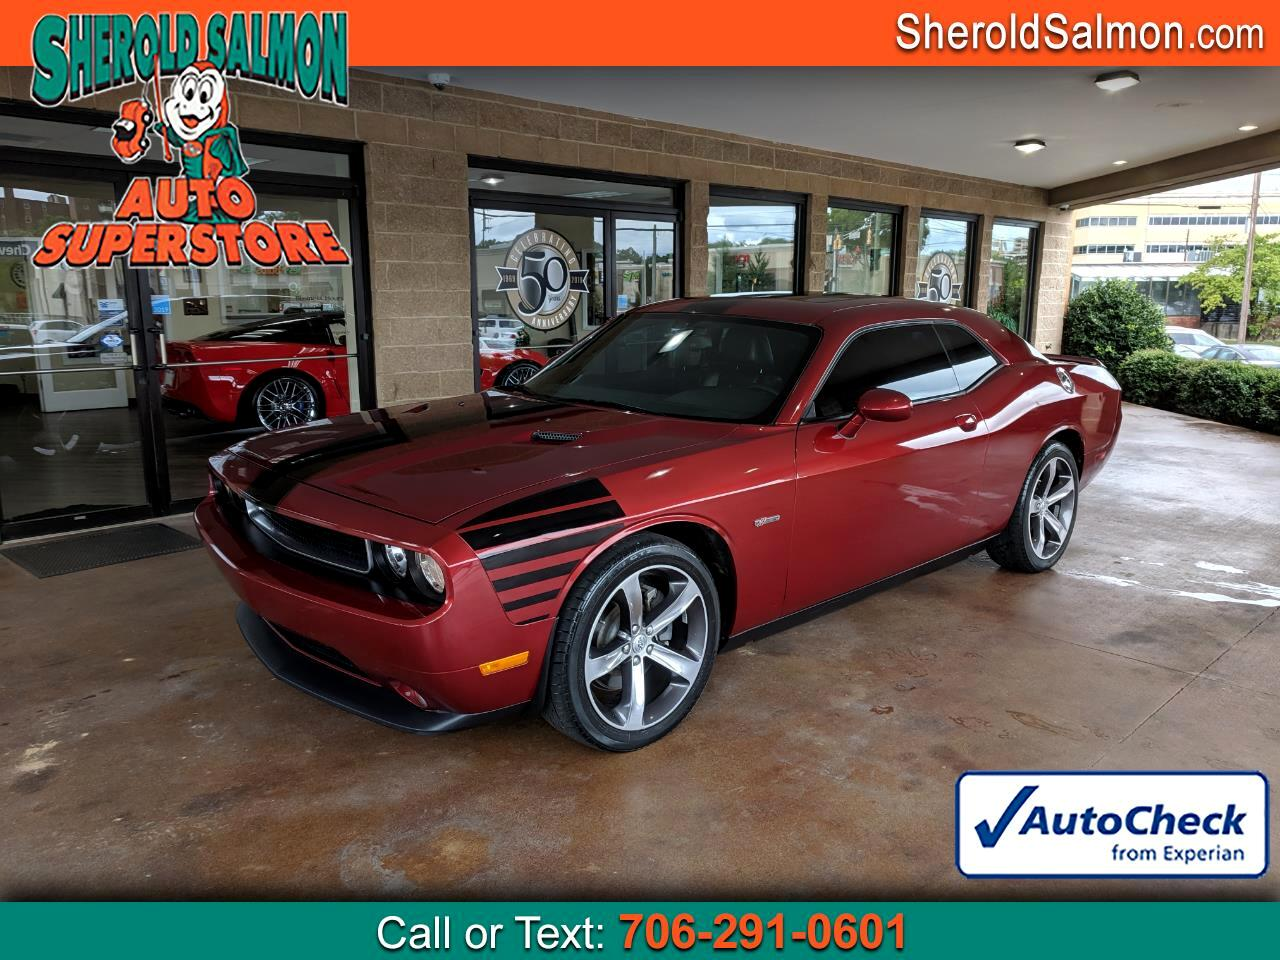 2014 Dodge Challenger 2dr Cpe SXT 100th Anniversary Appearance Group